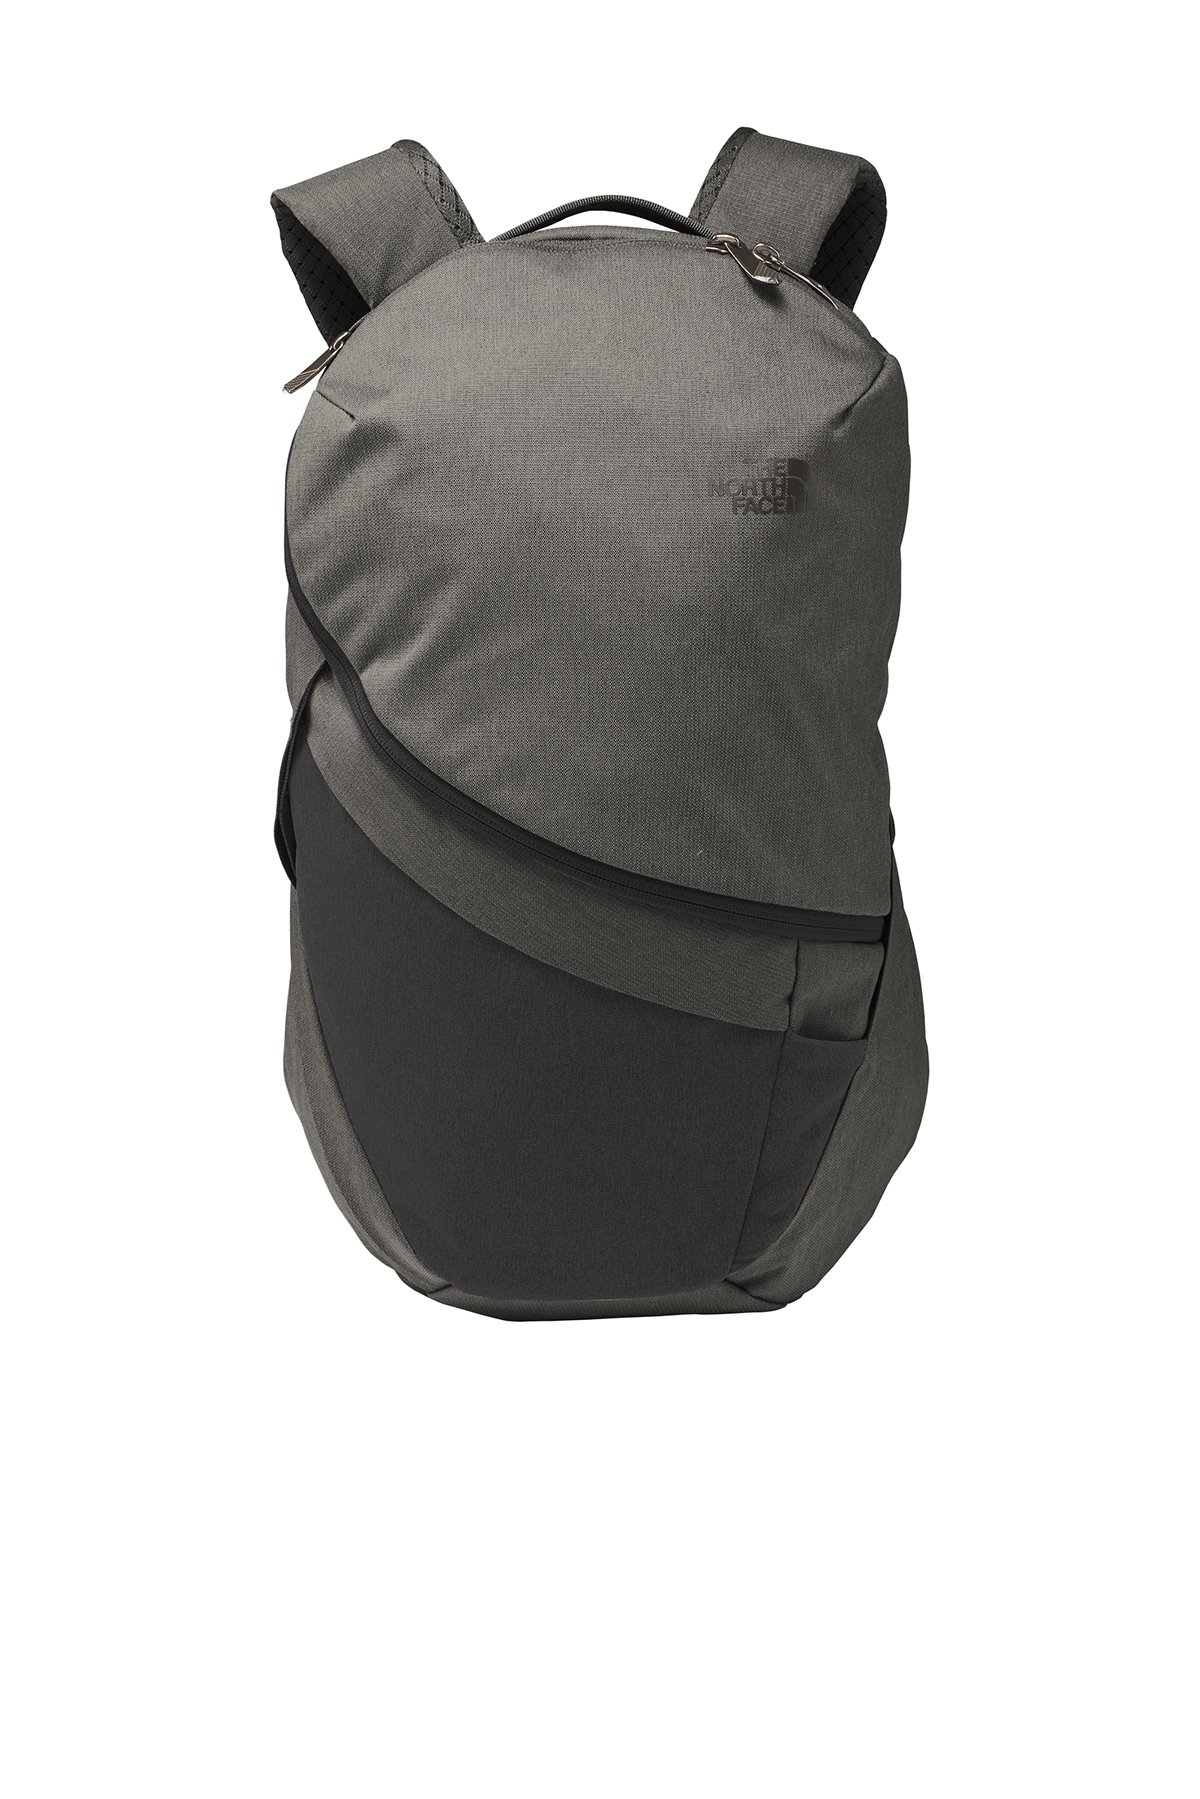 The North Face NF0A3KXY - Aurora II Backpack